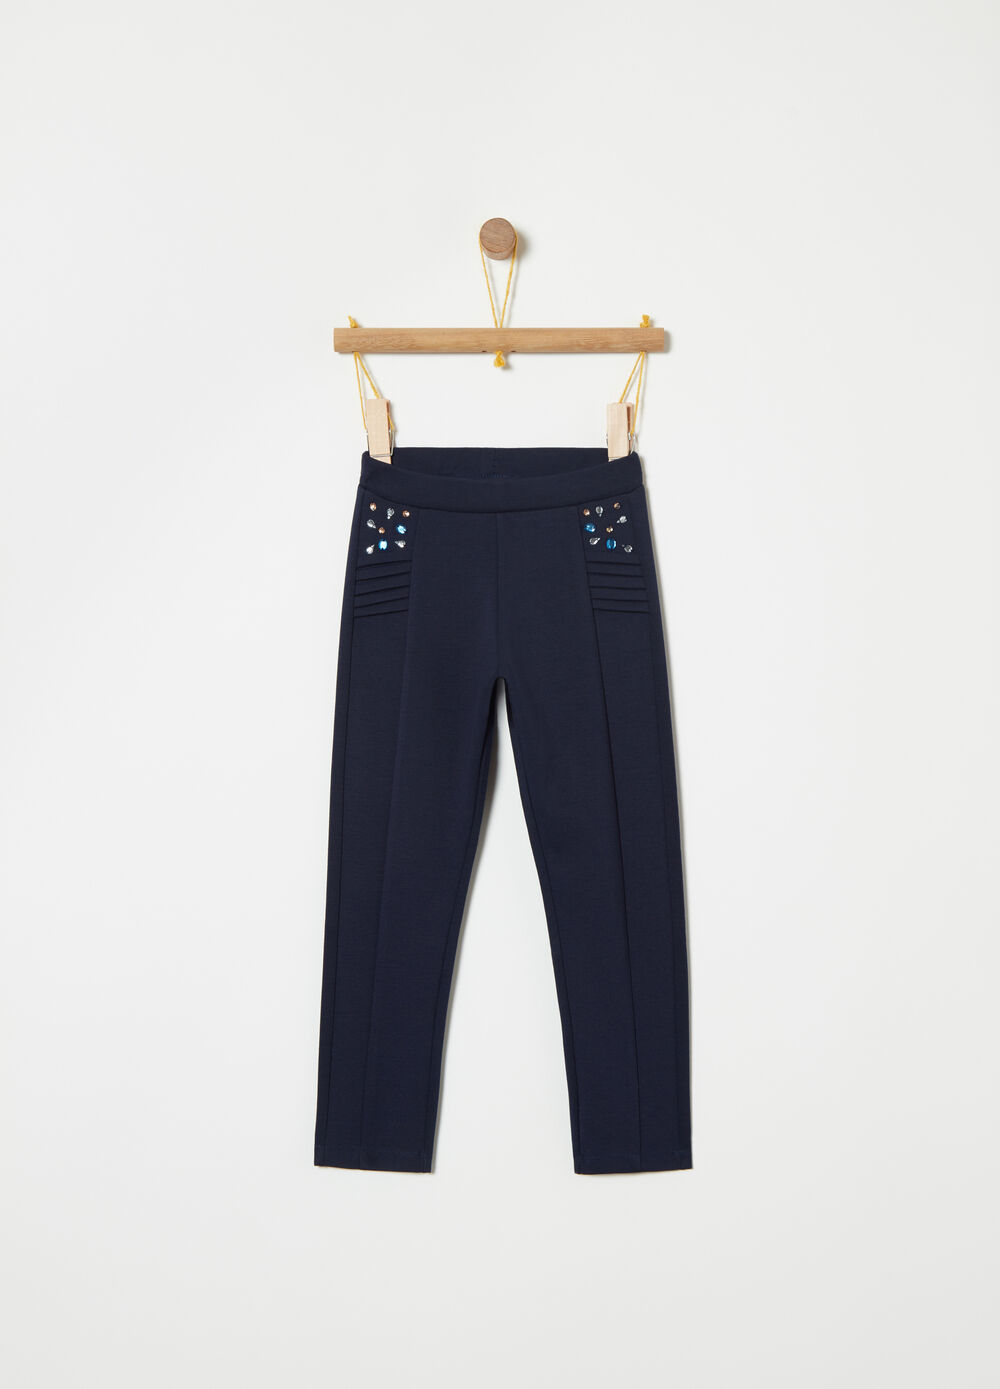 Milano-stitch trousers with diamantés